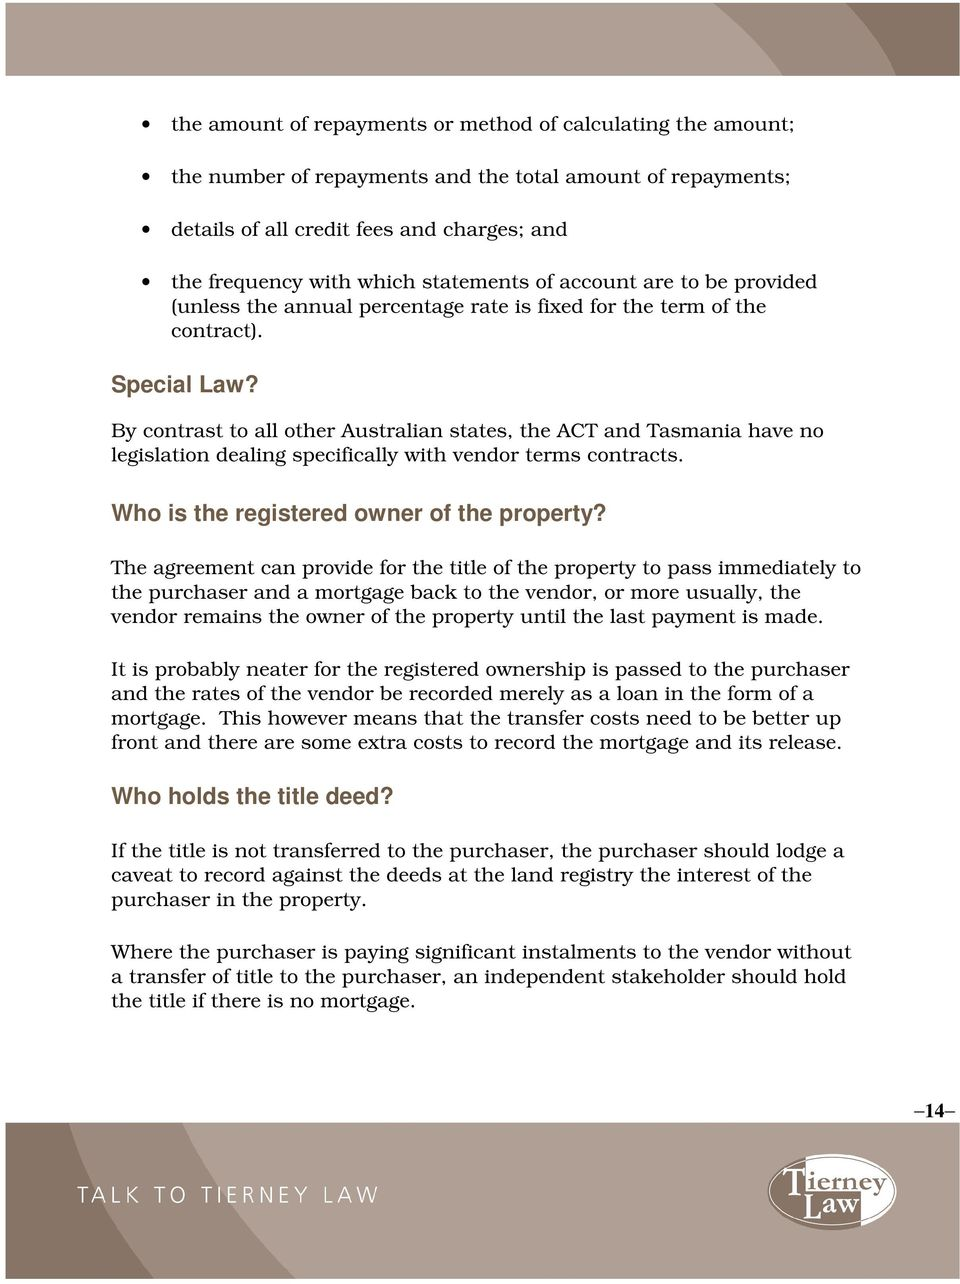 By contrast to all other Australian states, the ACT and Tasmania have no legislation dealing specifically with vendor terms contracts. Who is the registered owner of the property?